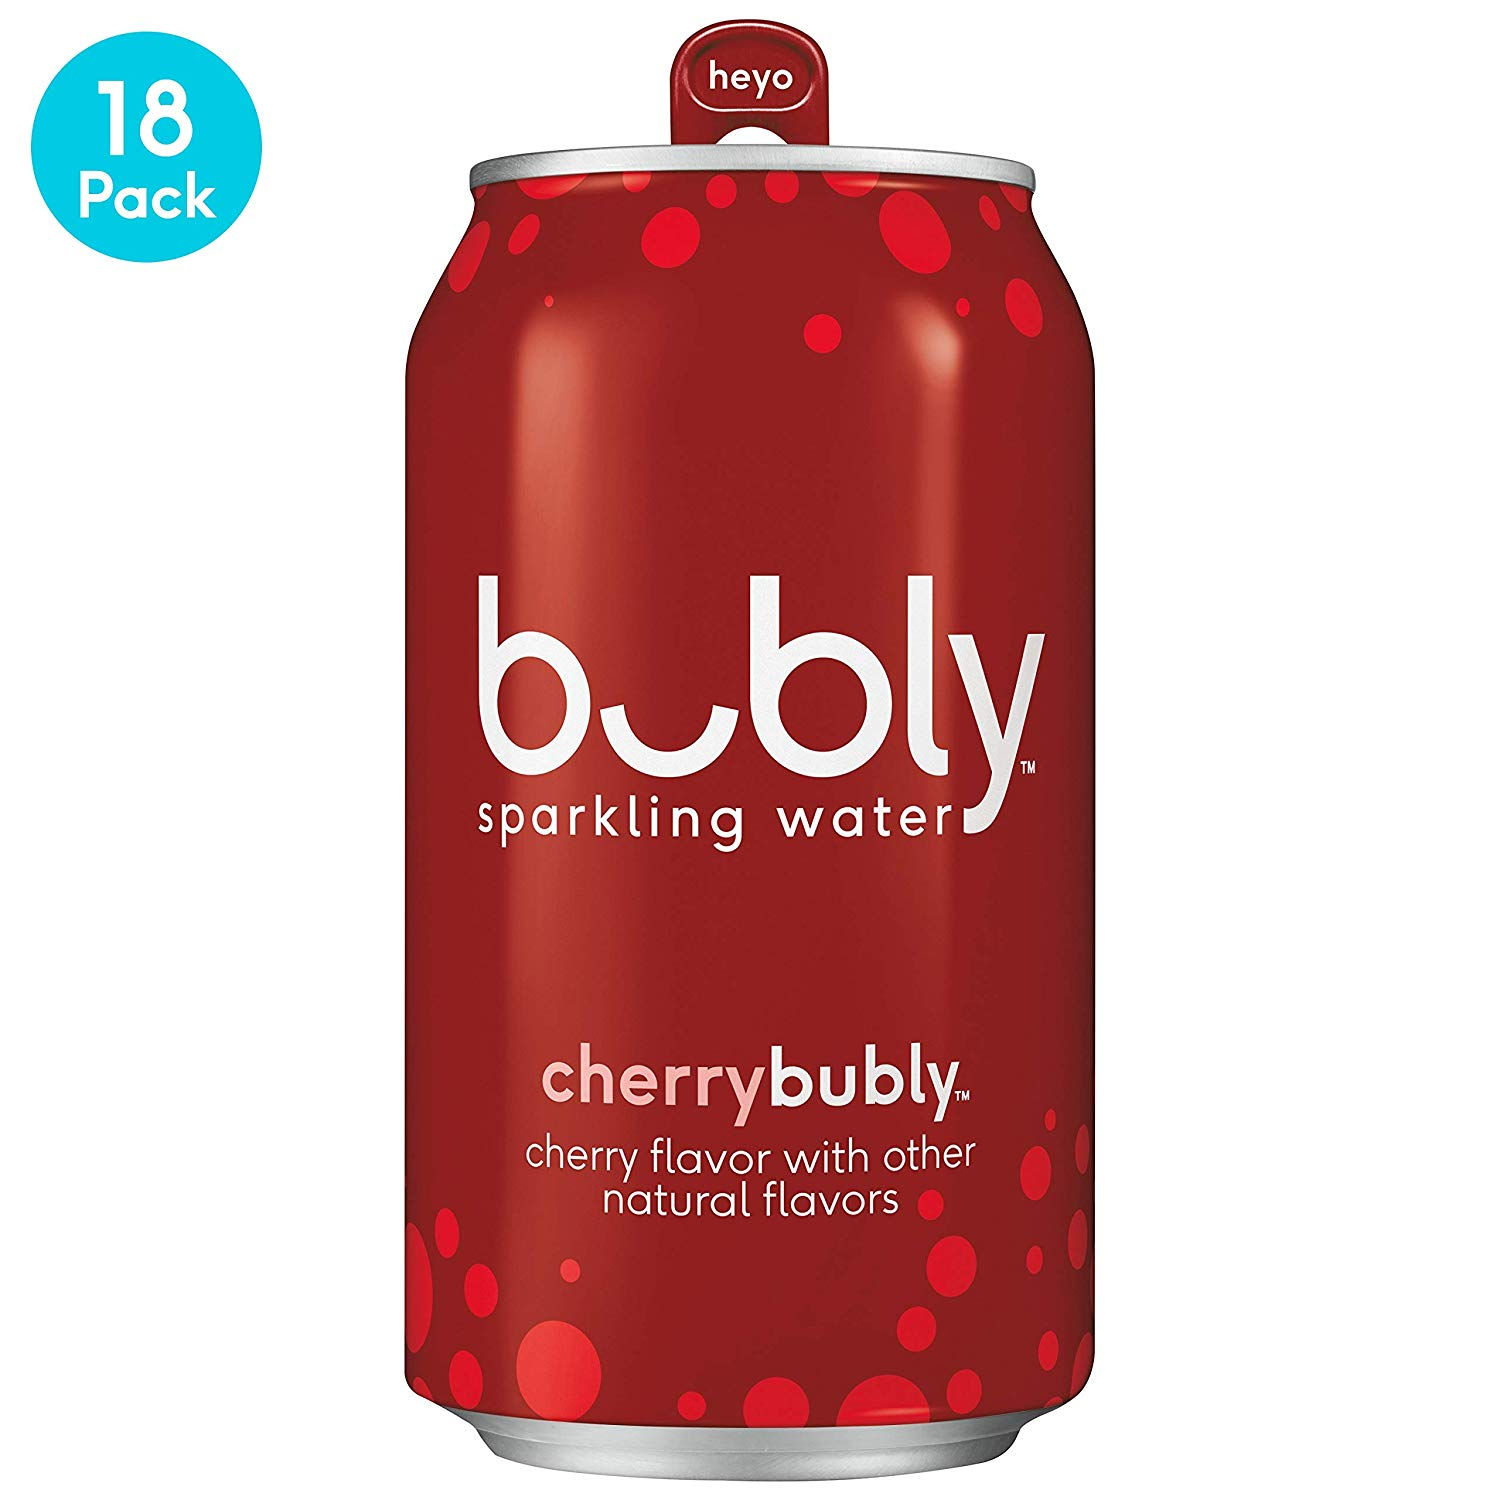 bubly Sparkling Water (18 Pack) only $7.23!